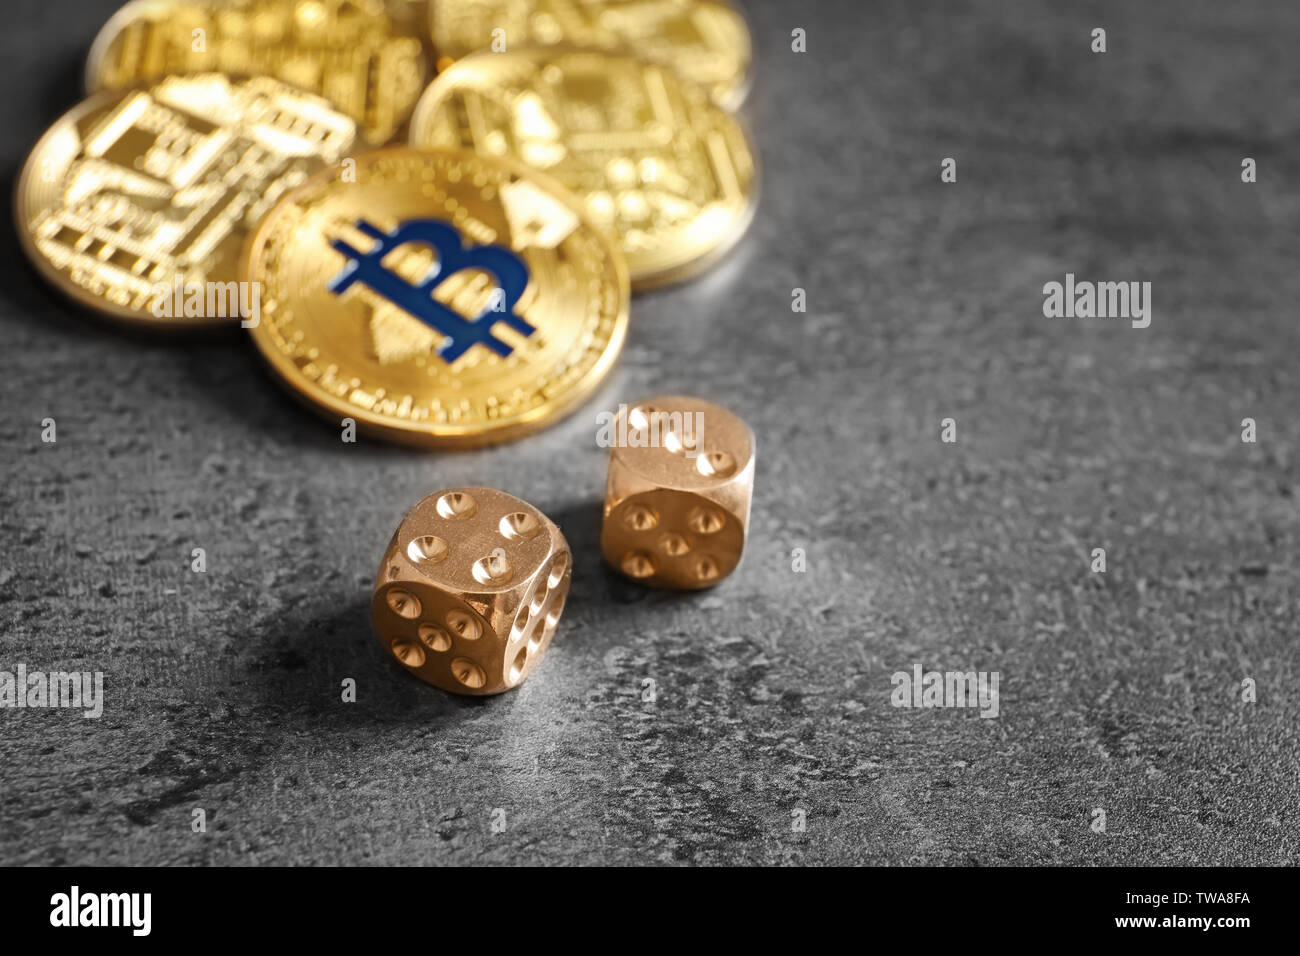 Golden bitcoins and dice on grey background. Finance trading - Stock Image